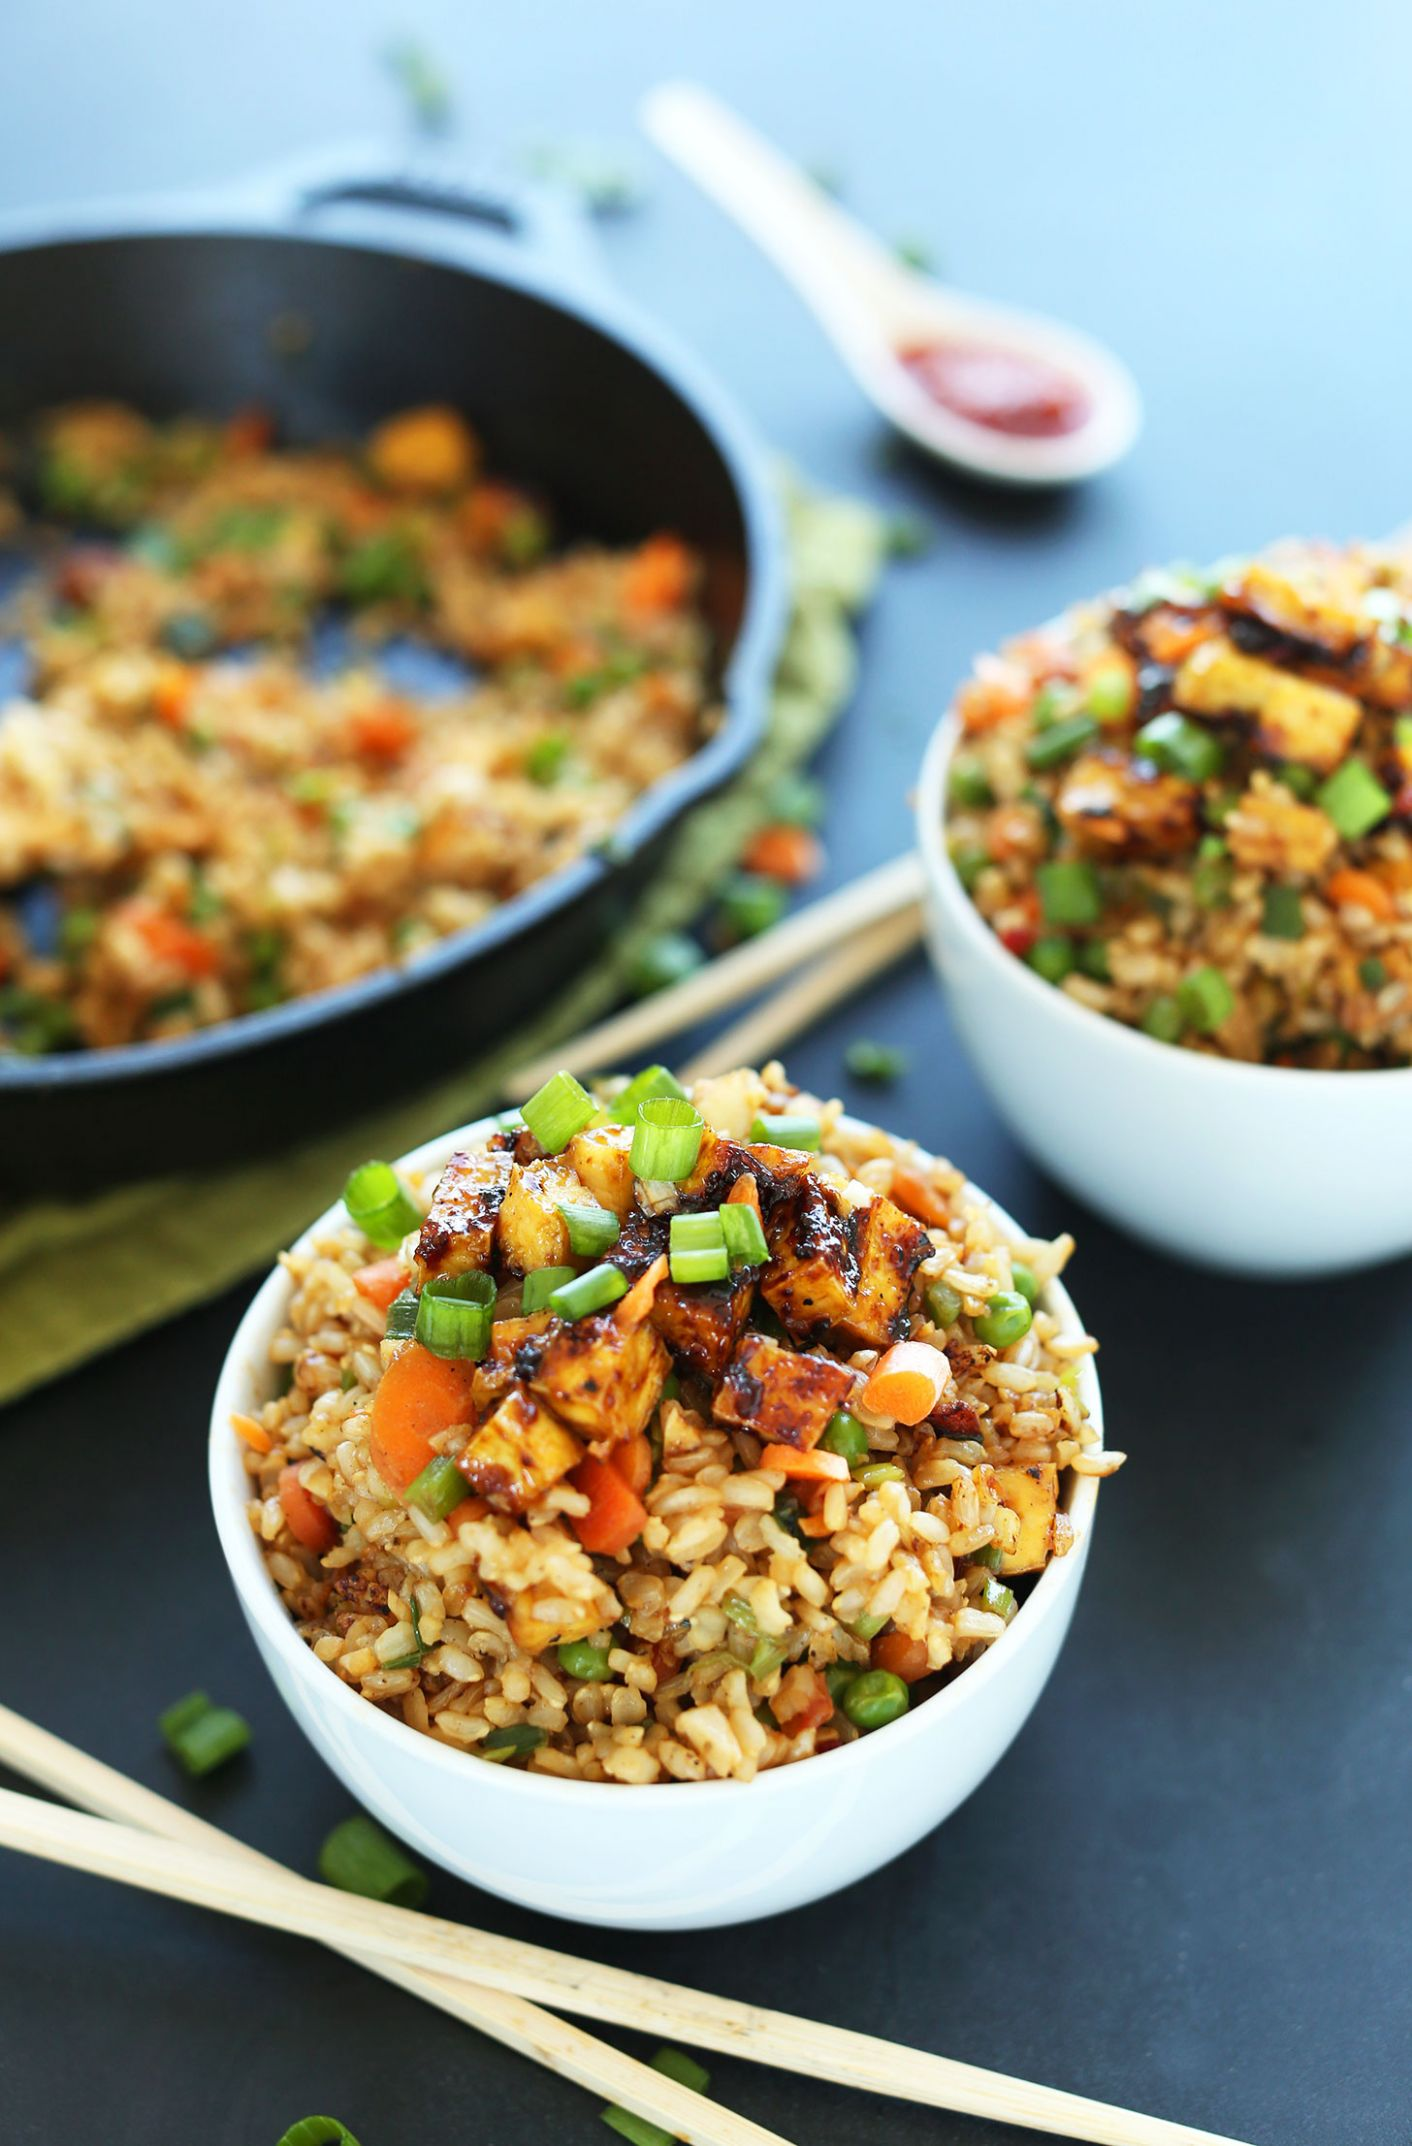 Easy Vegan Fried Rice - Vegetable Recipes Main Course